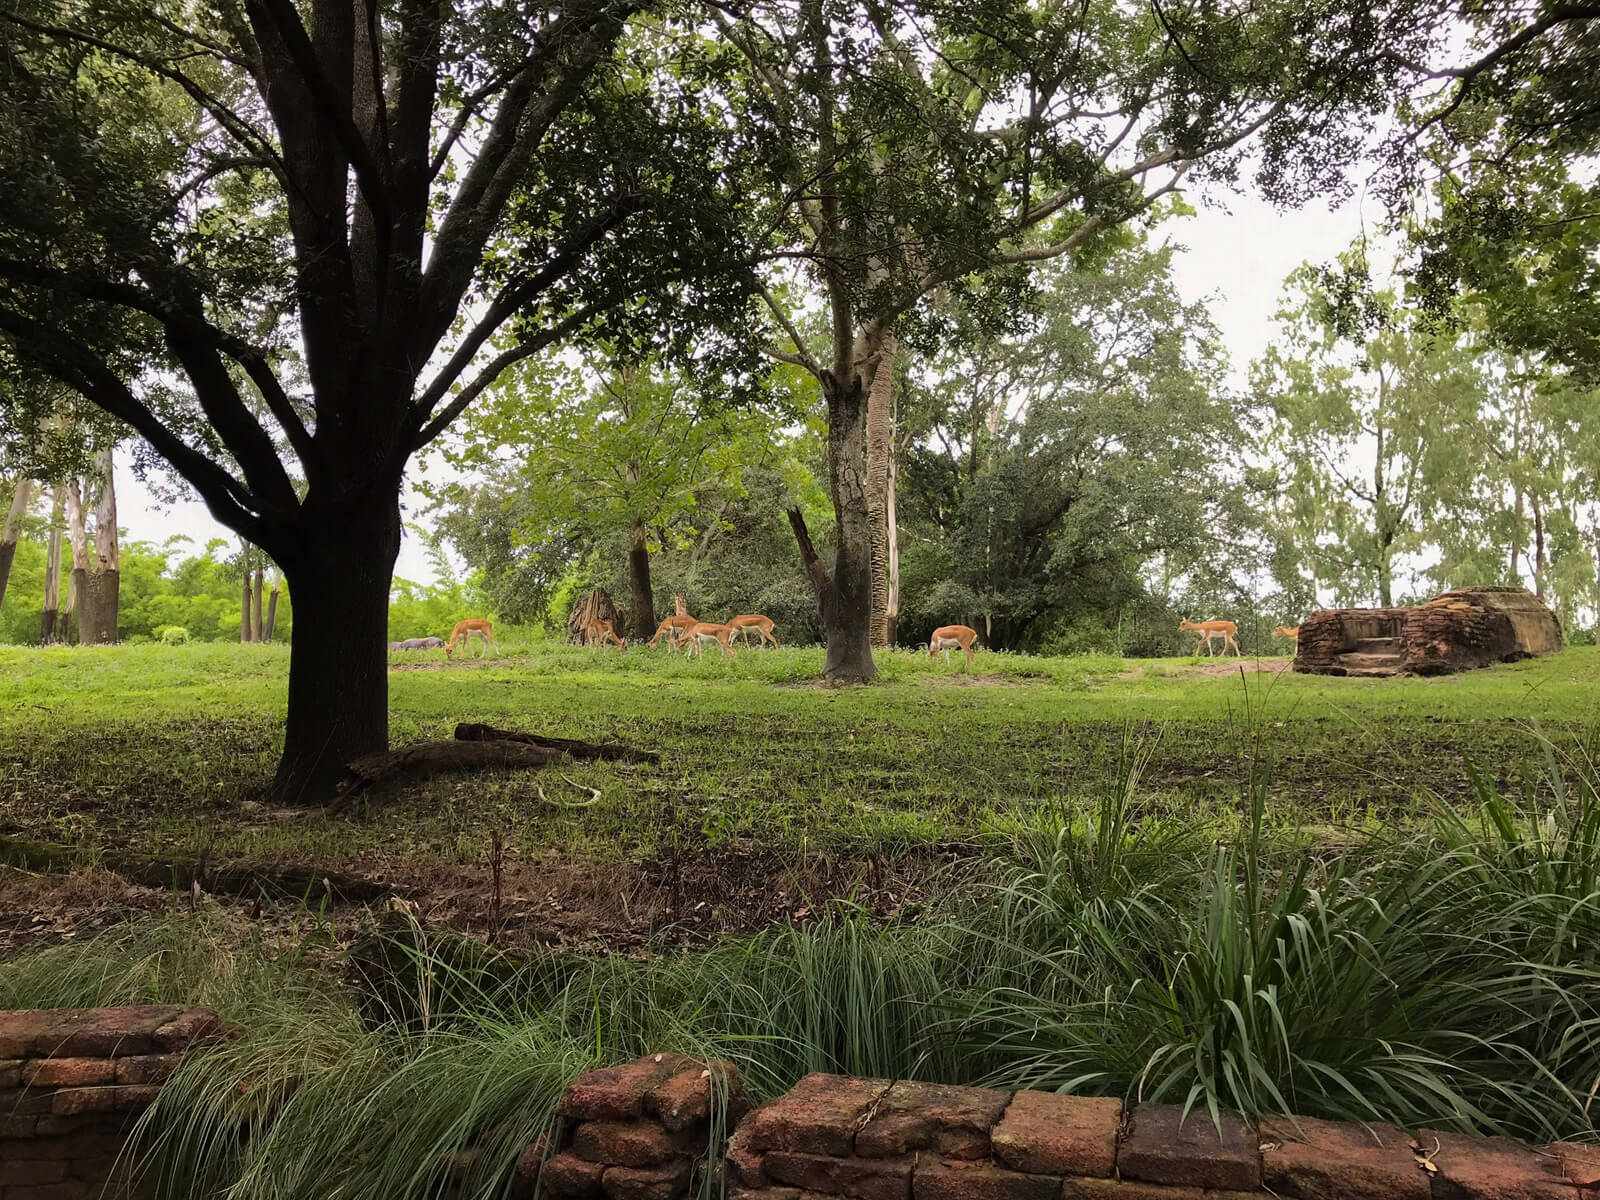 A grassy area with several trees and some antelope in the distance